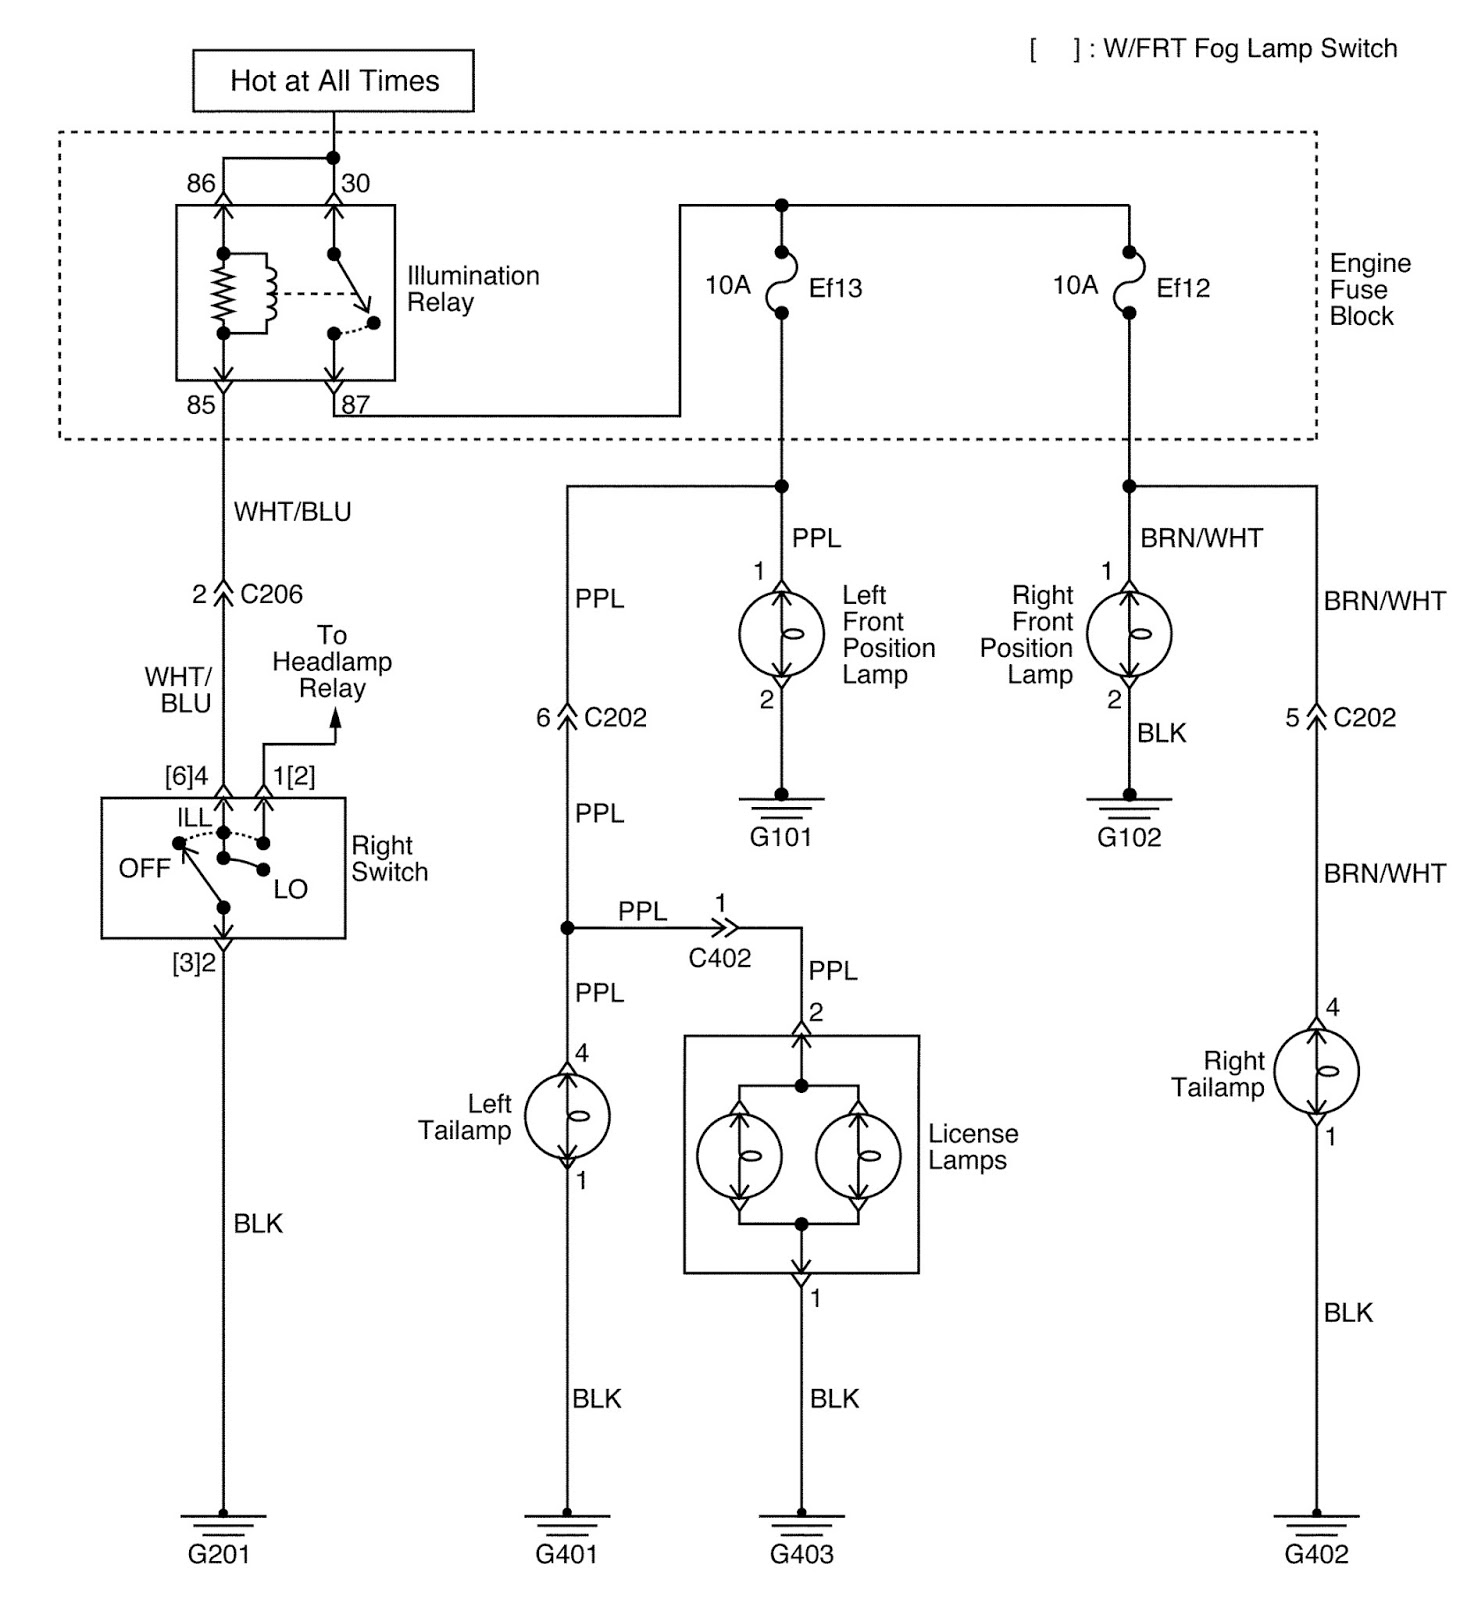 small resolution of daewoo lanos wiring diagram data wiring diagram schema custom daewoo lanos 2002 2002 daewoo lanos wiring diagram